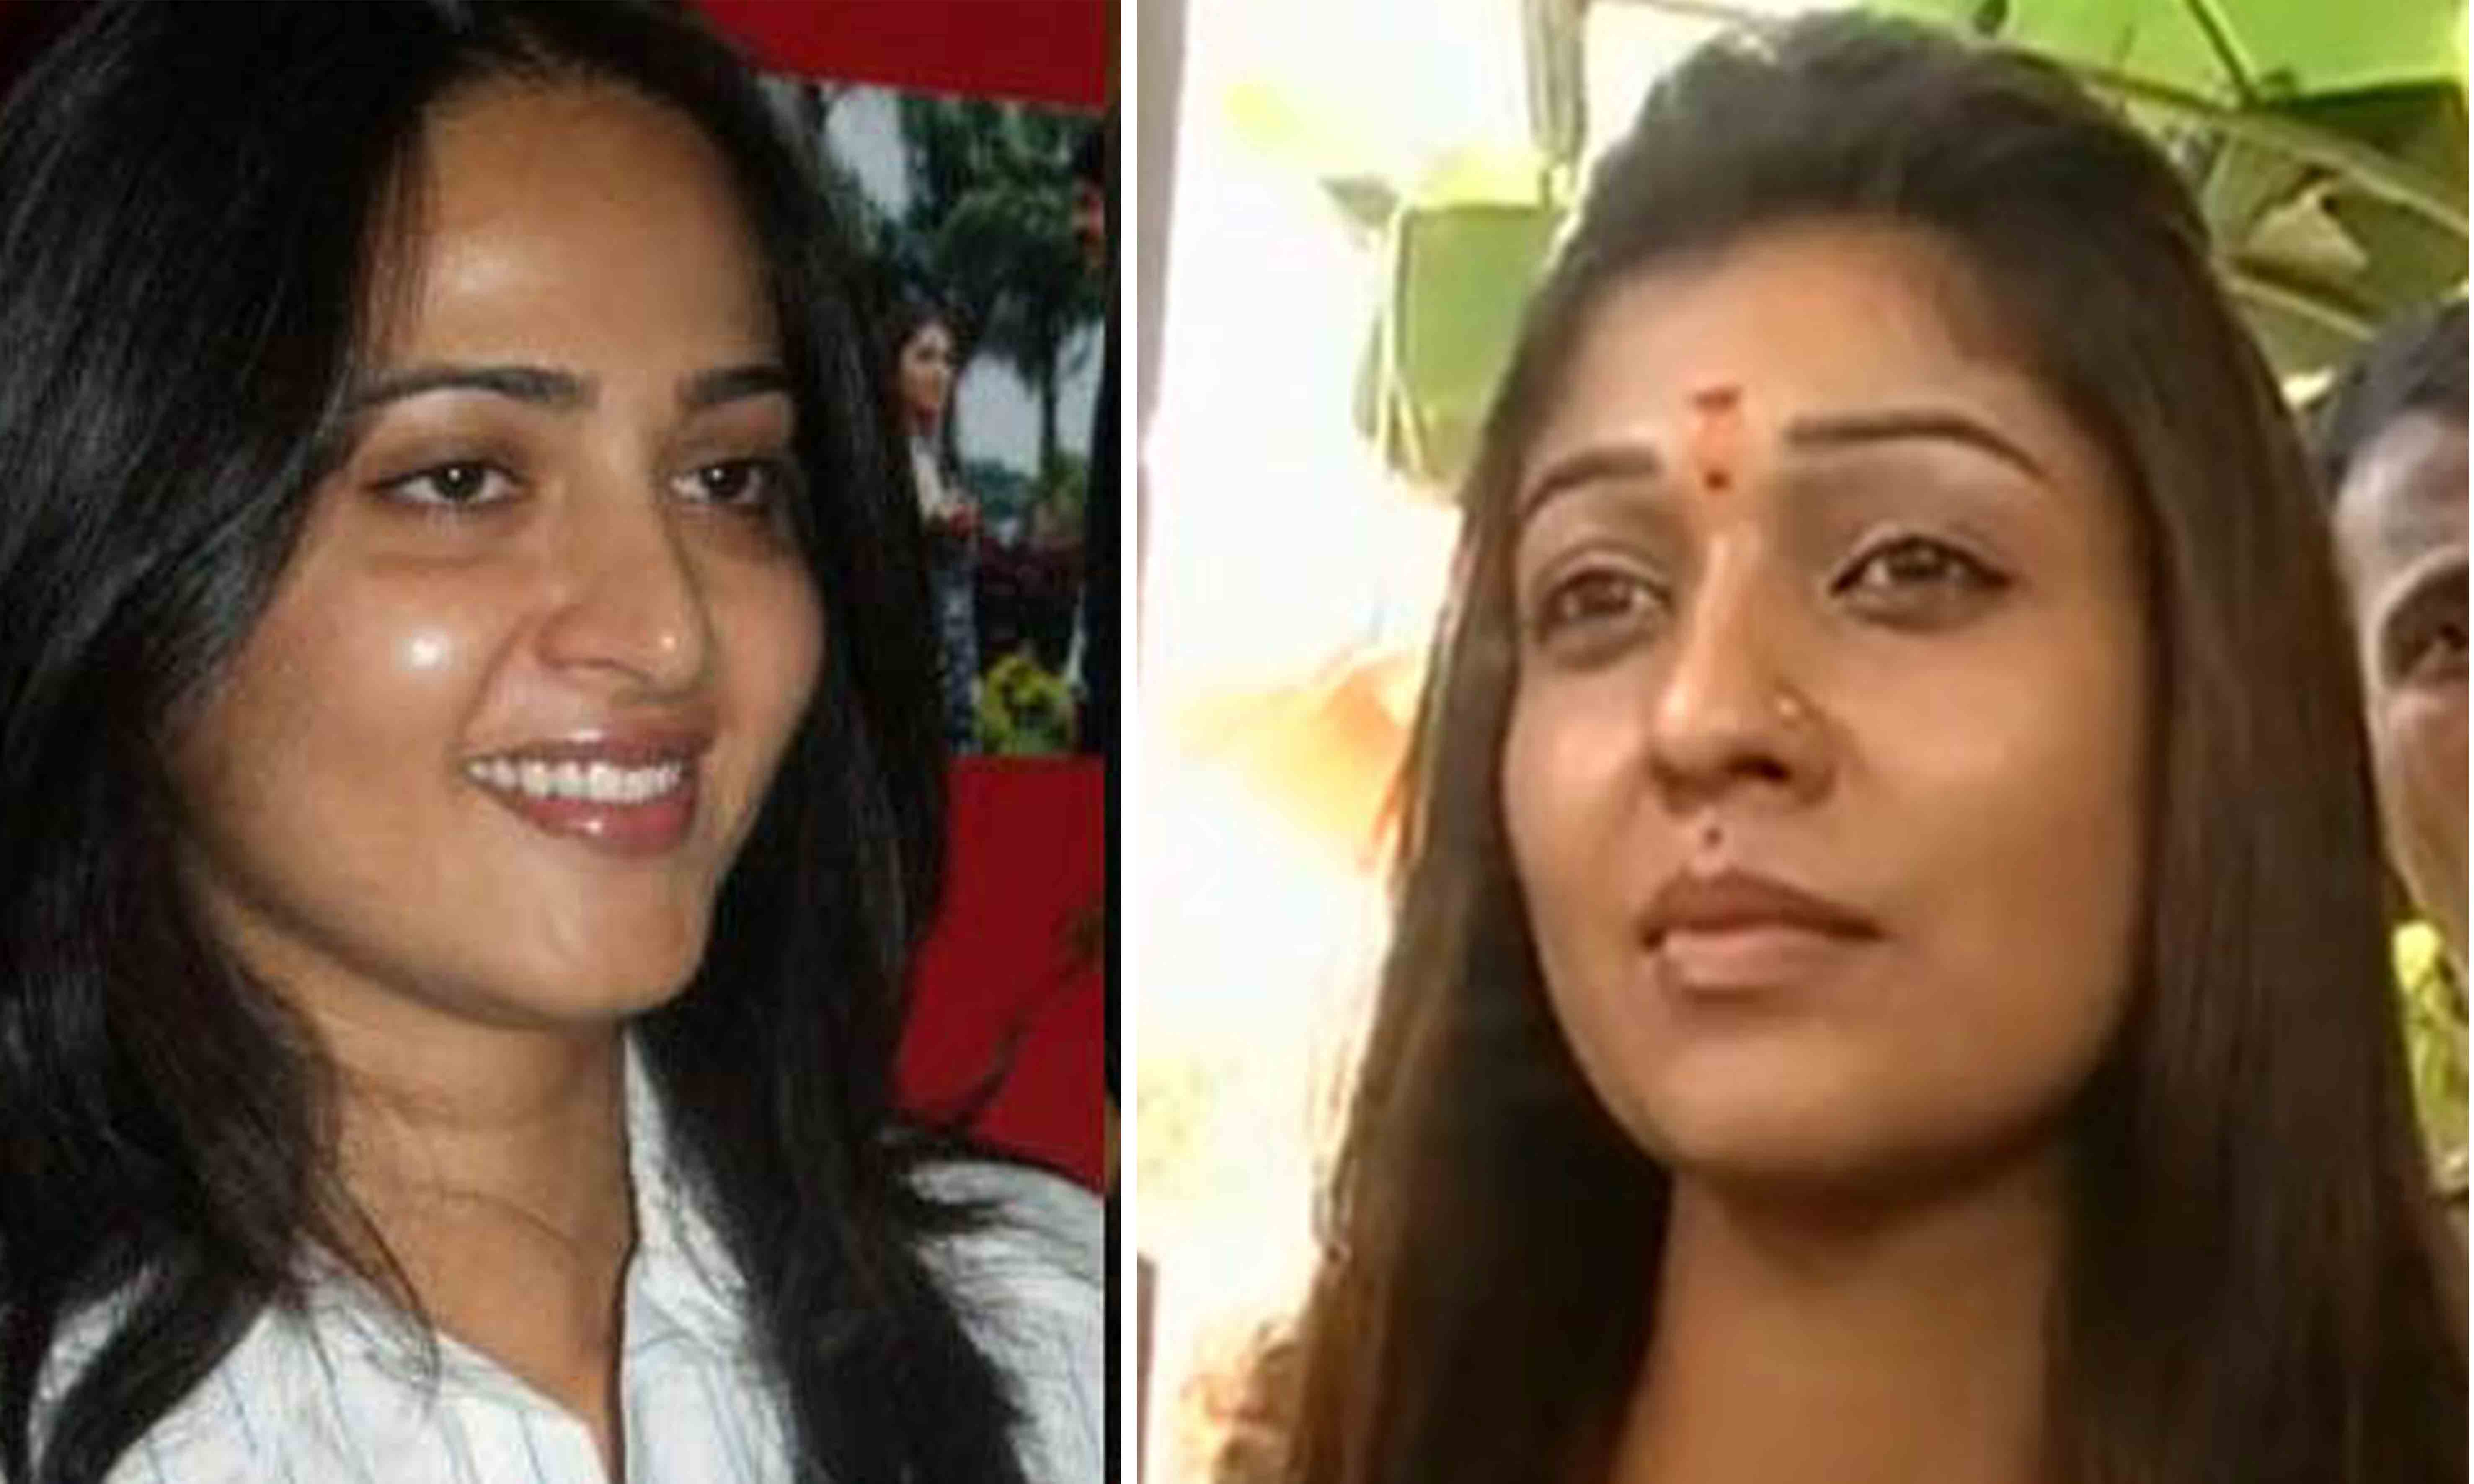 Tollywood Heroines without Make Up, Telugu heroines without makeup, heroines without make up, tollywood top heroines without make up, tollywood heroines without makeup photos.